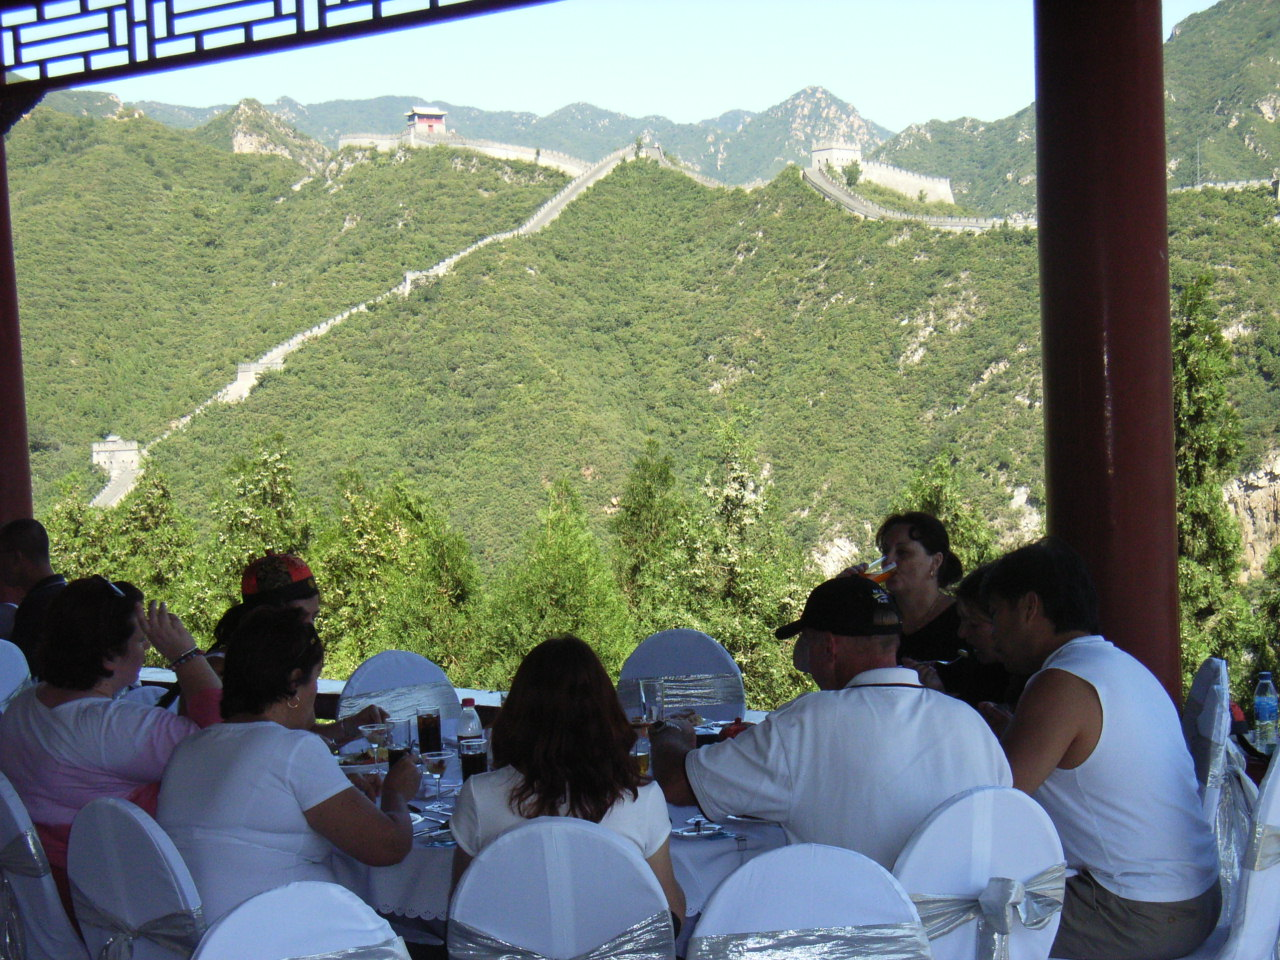 Lunch on the Great Wall